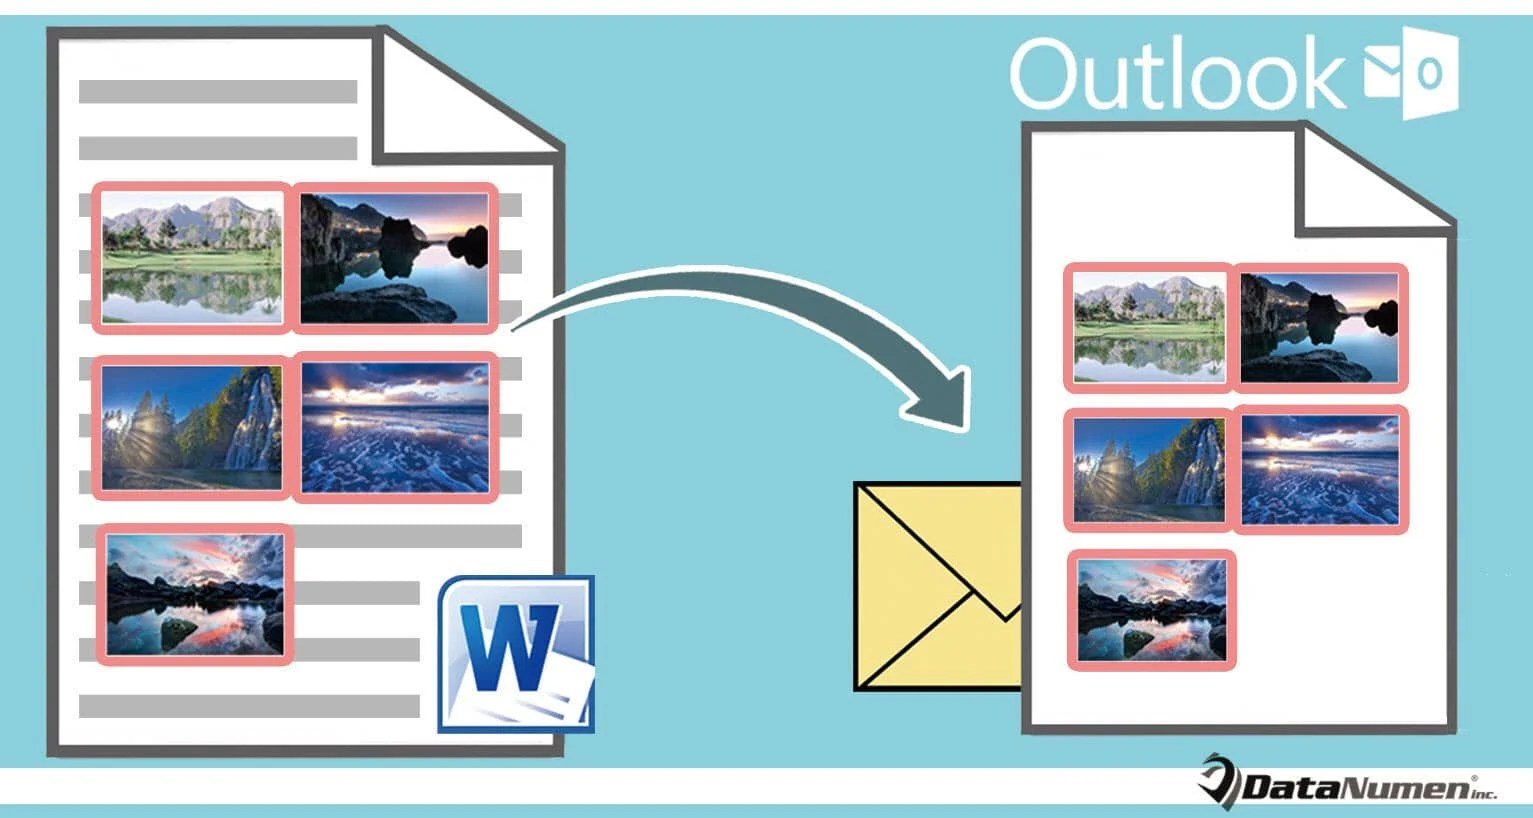 Copy All Images from a Word Document to an Outlook Email